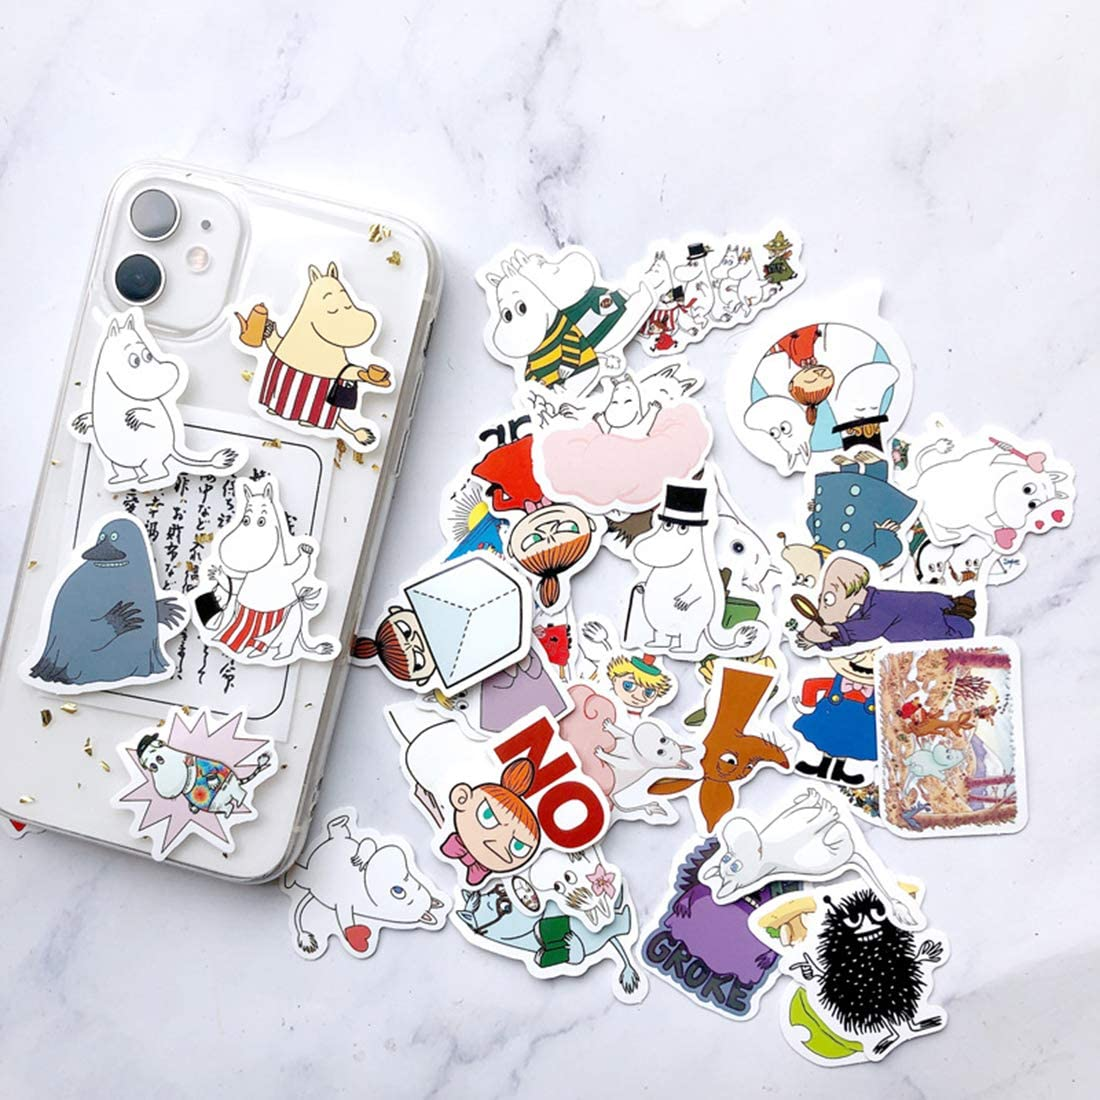 16Pcs Lovely Cute Dumbo Waterproof Stickers for Water Bottle Cup Laptop Bike Skateboard Luggage Box Vinyl Graffiti Patches BRWJ